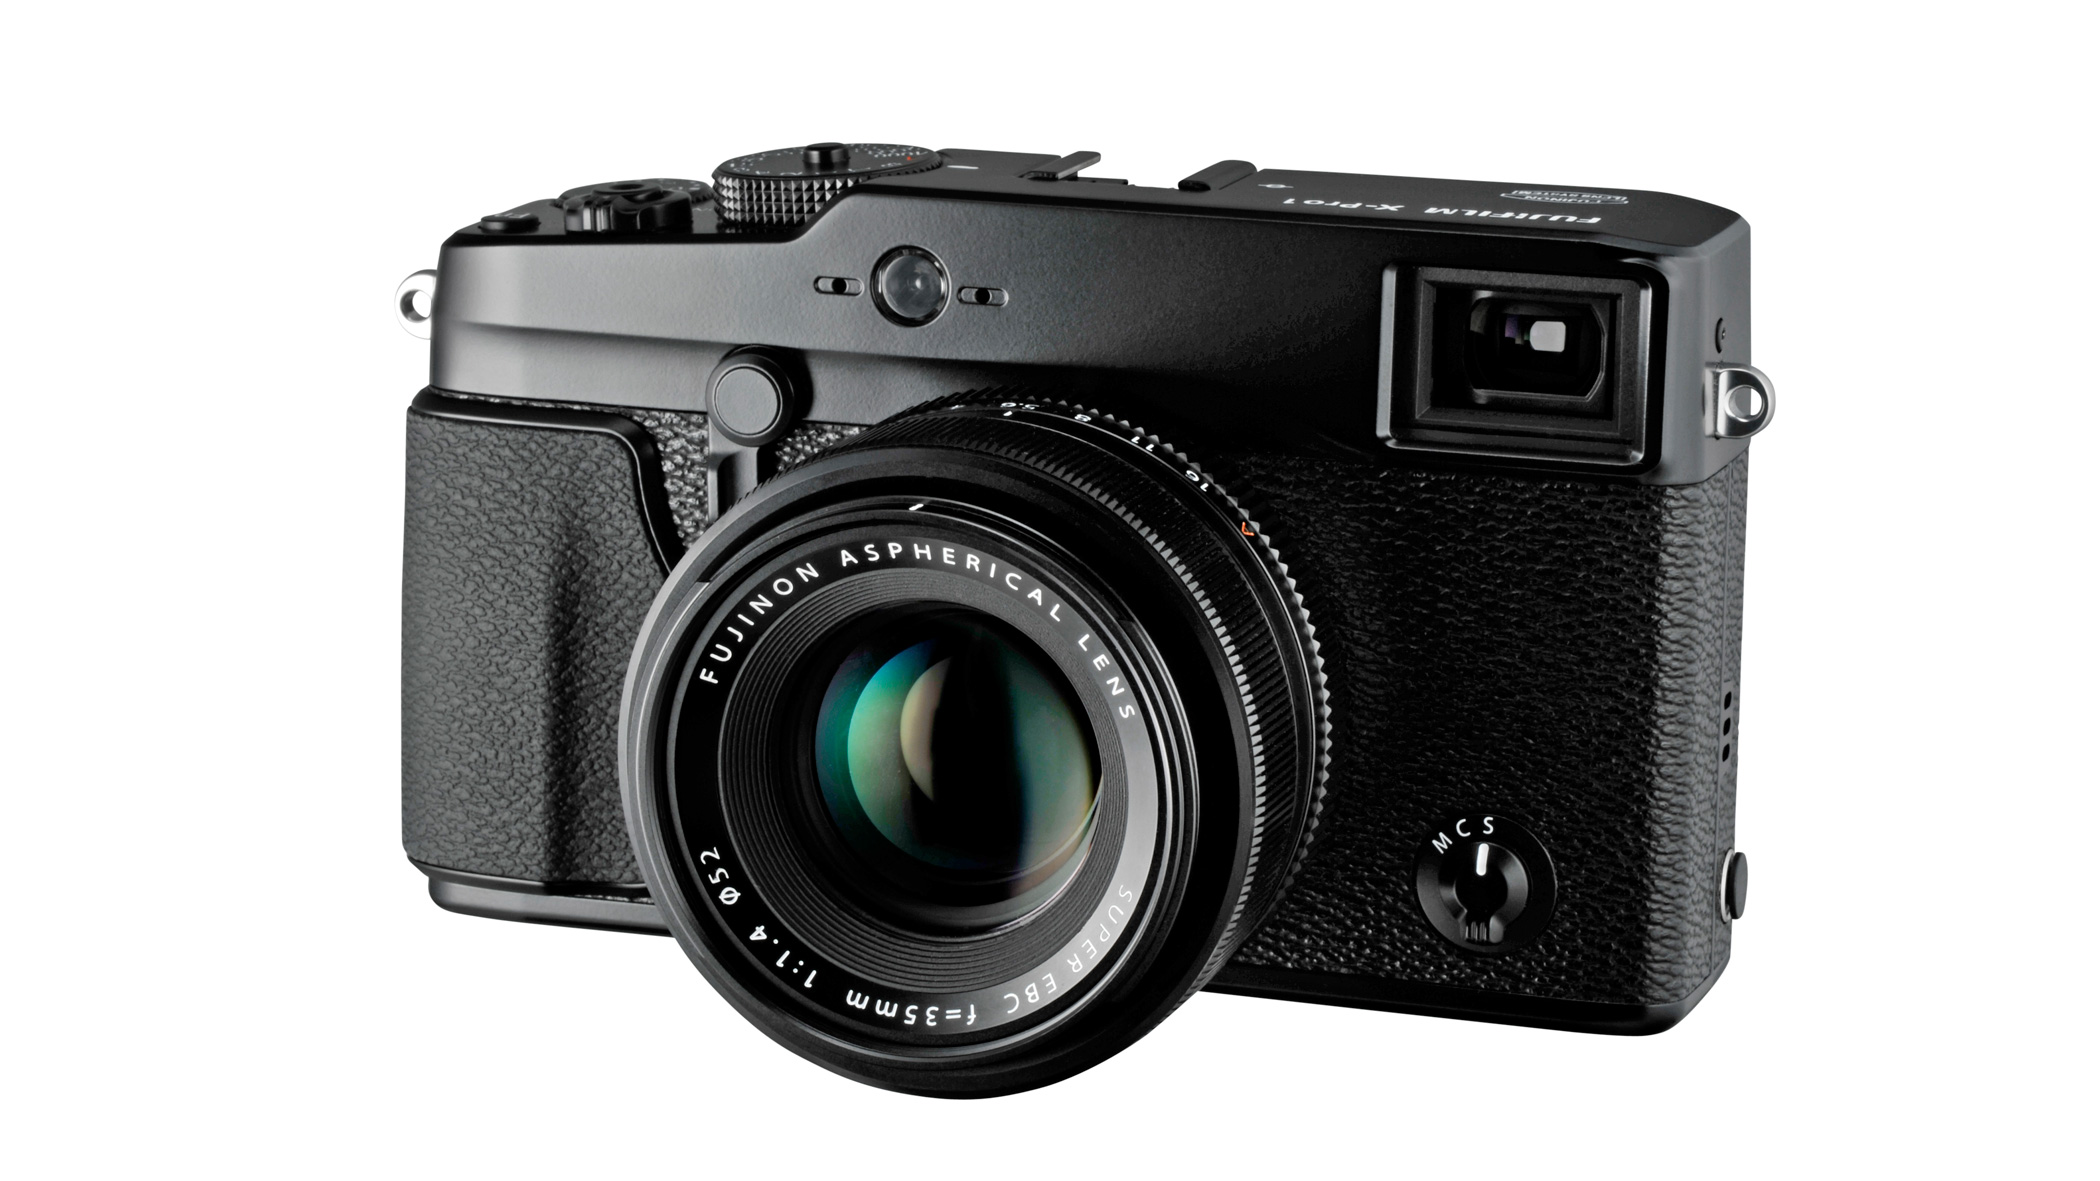 Fujifilm X-Pro2 to be Announced at CES 2016, Fuji Full Frame ...